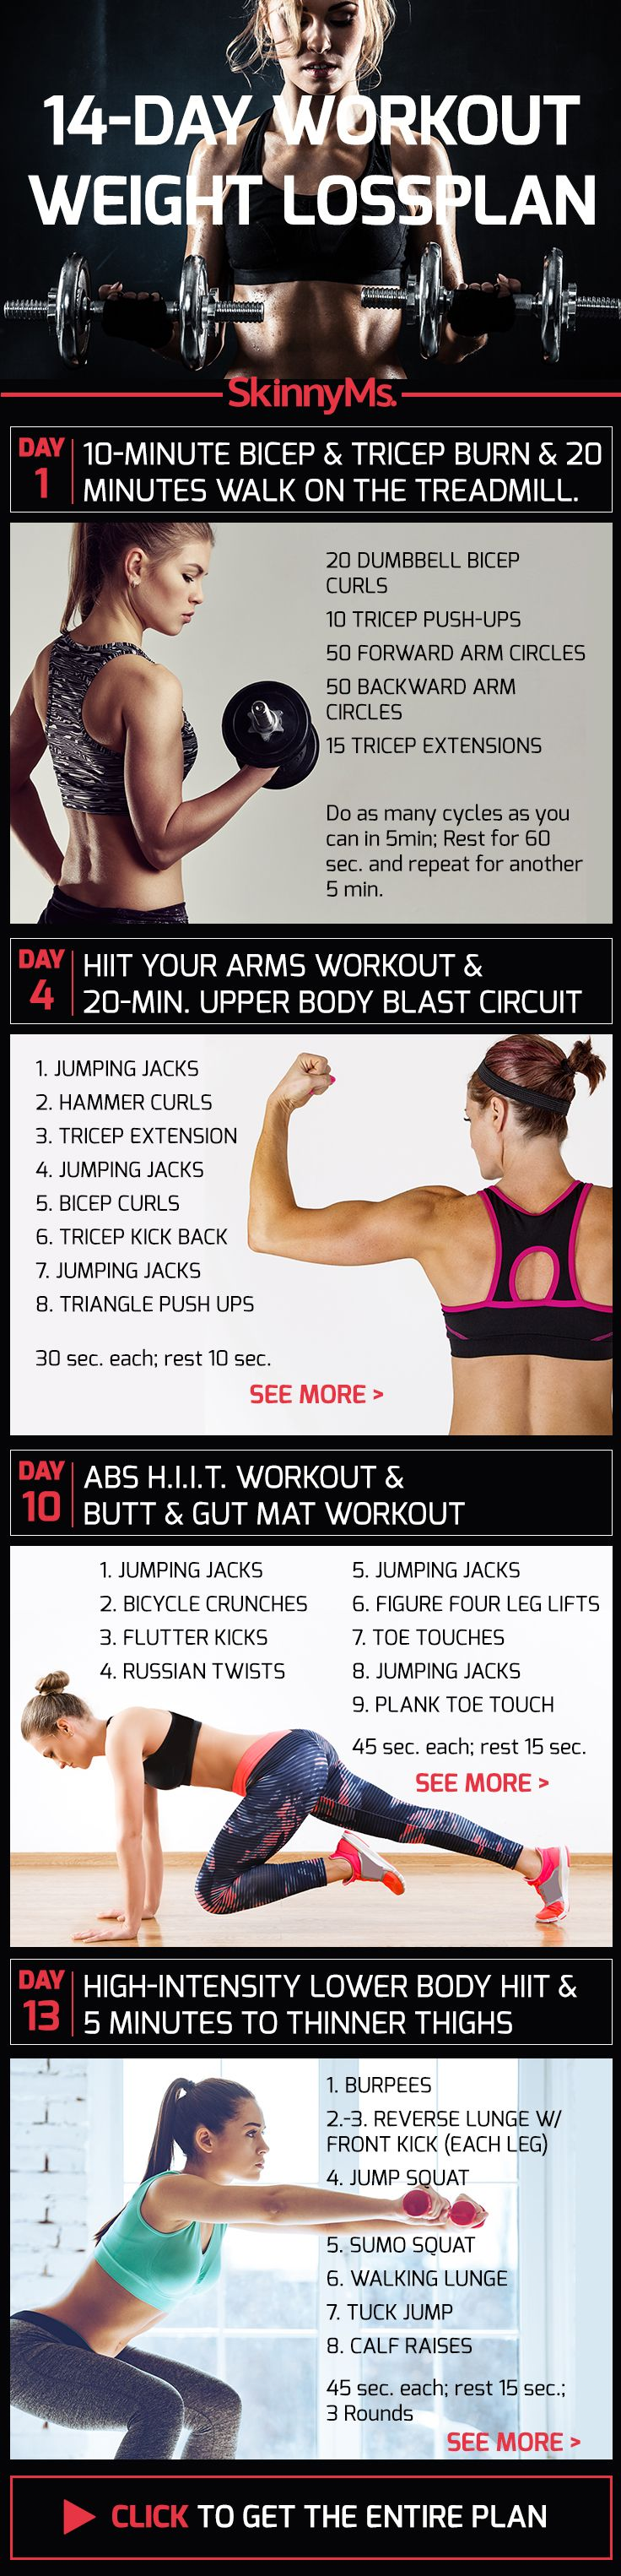 A healthy weight loss plan you can live with! | 14-Day Workout Weight Loss Plan #weightloss #fitness #workout